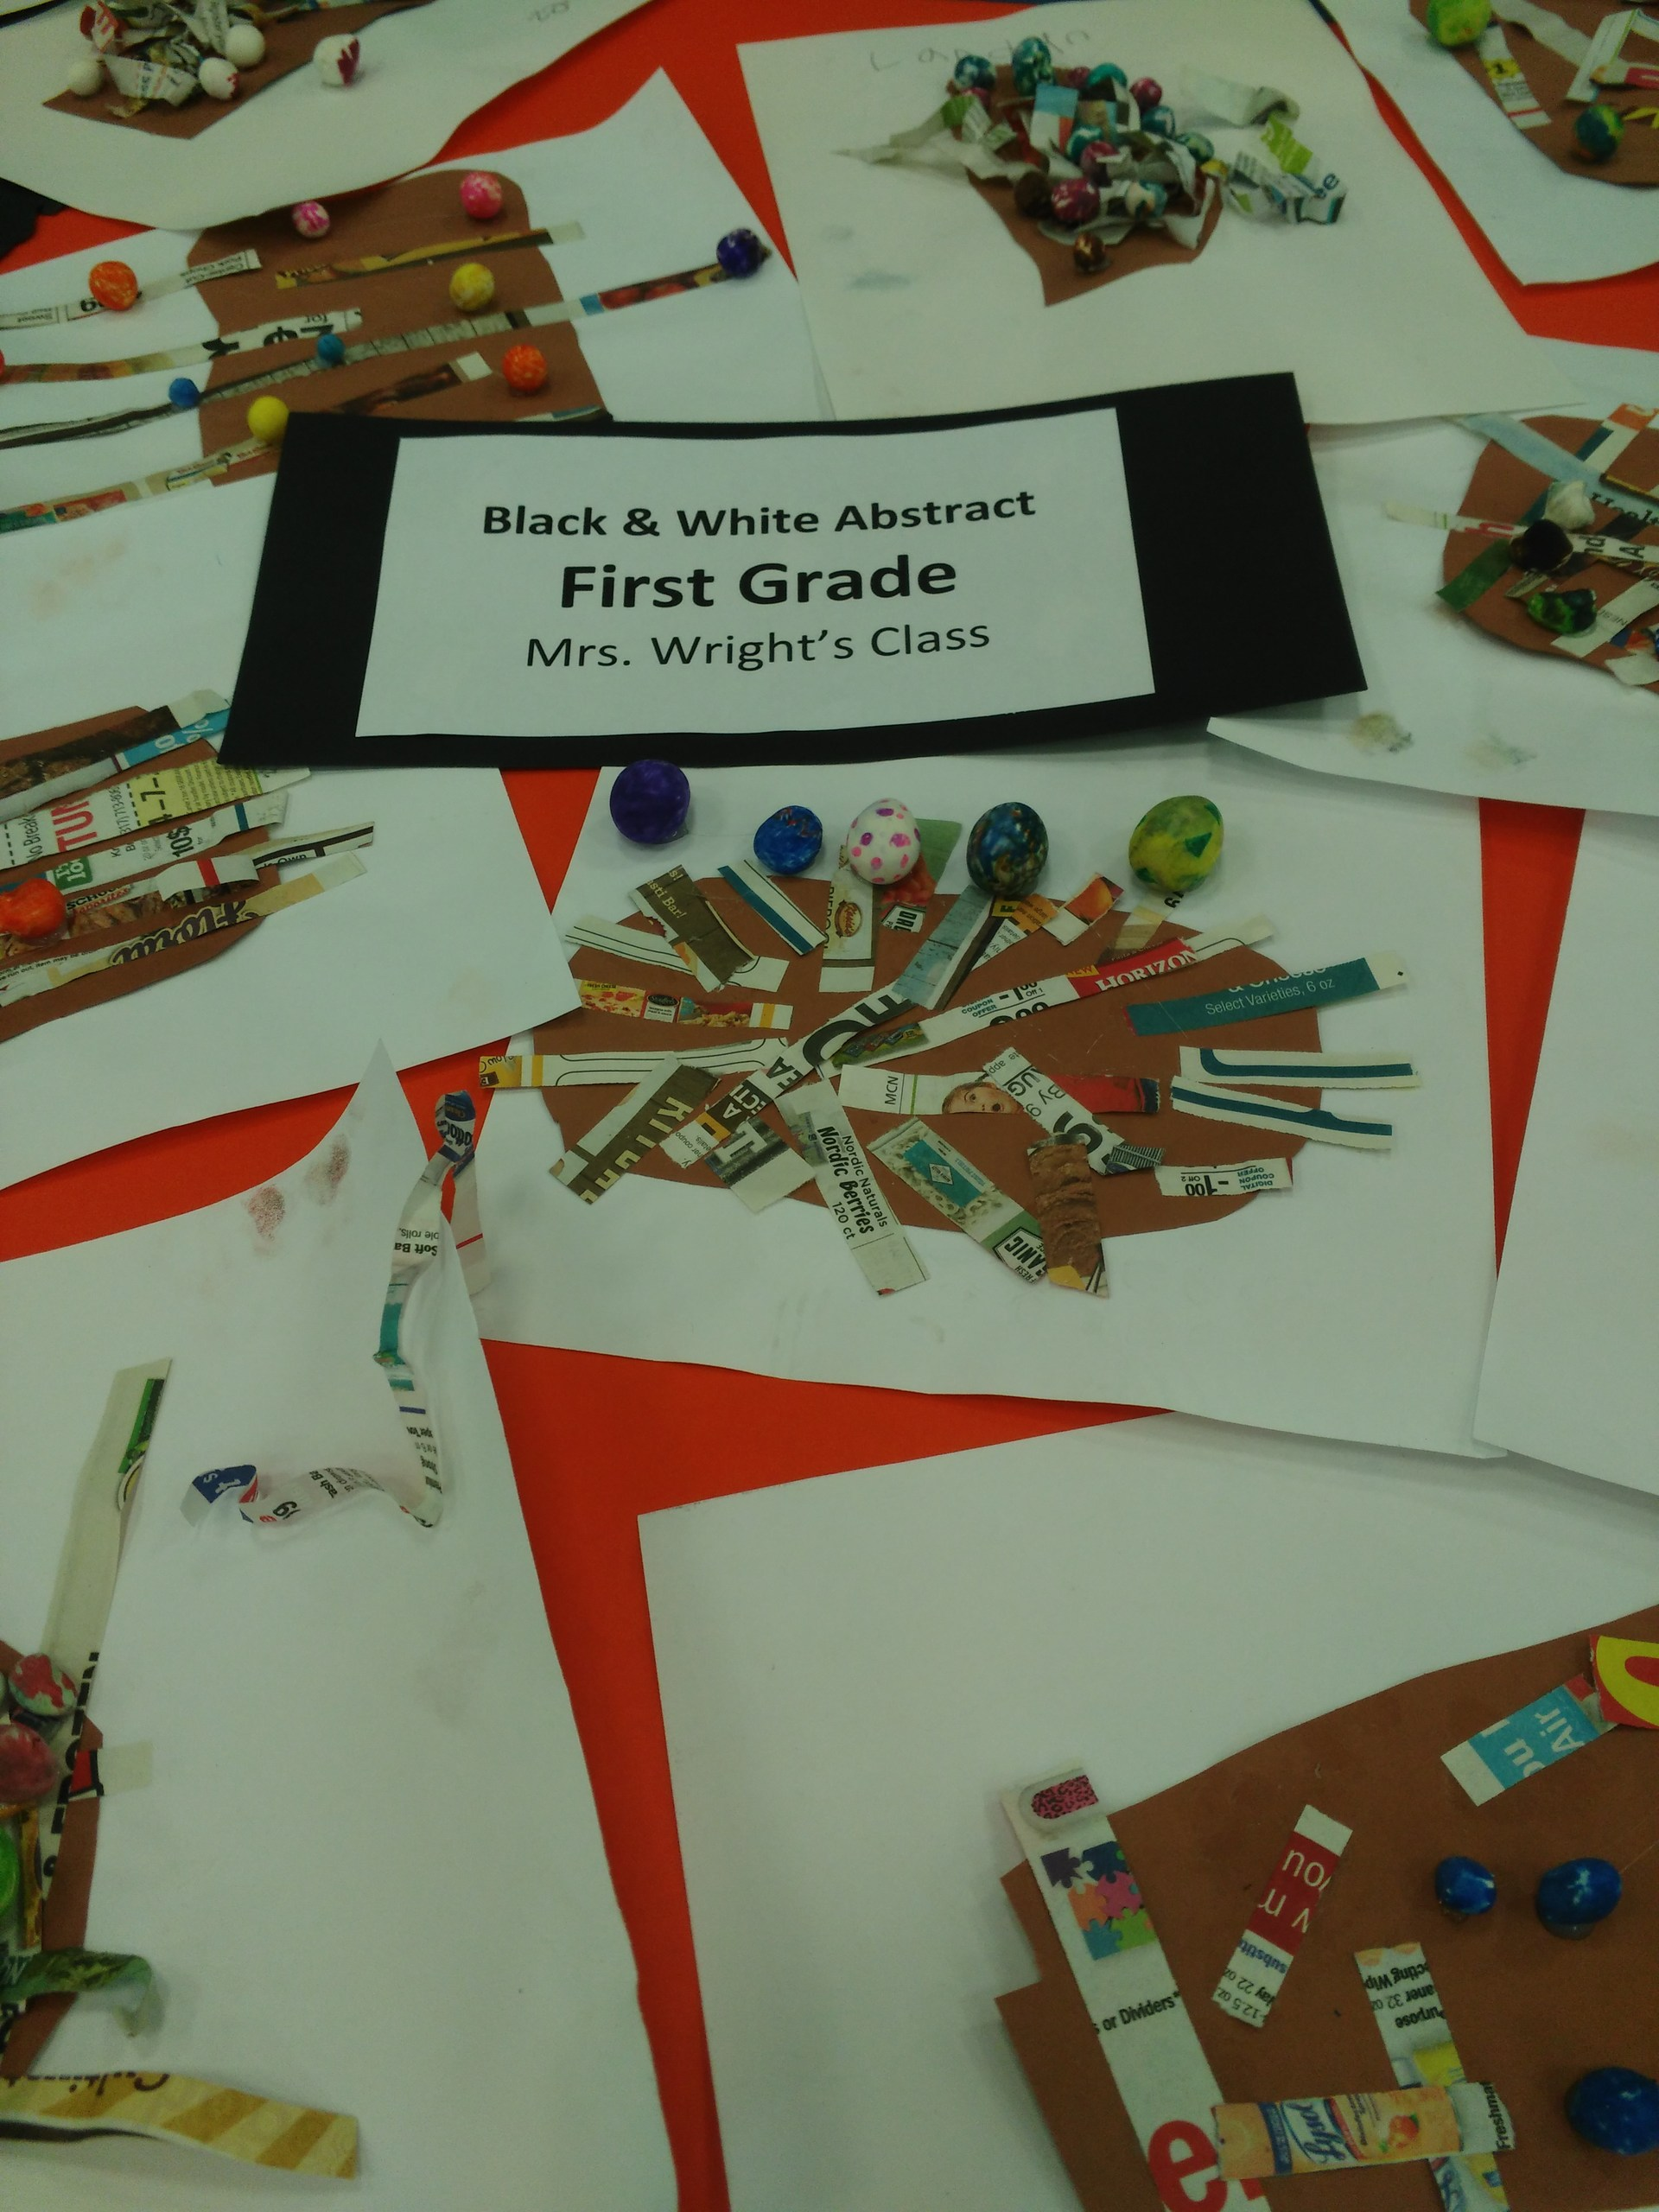 First Grade Art work in a pile